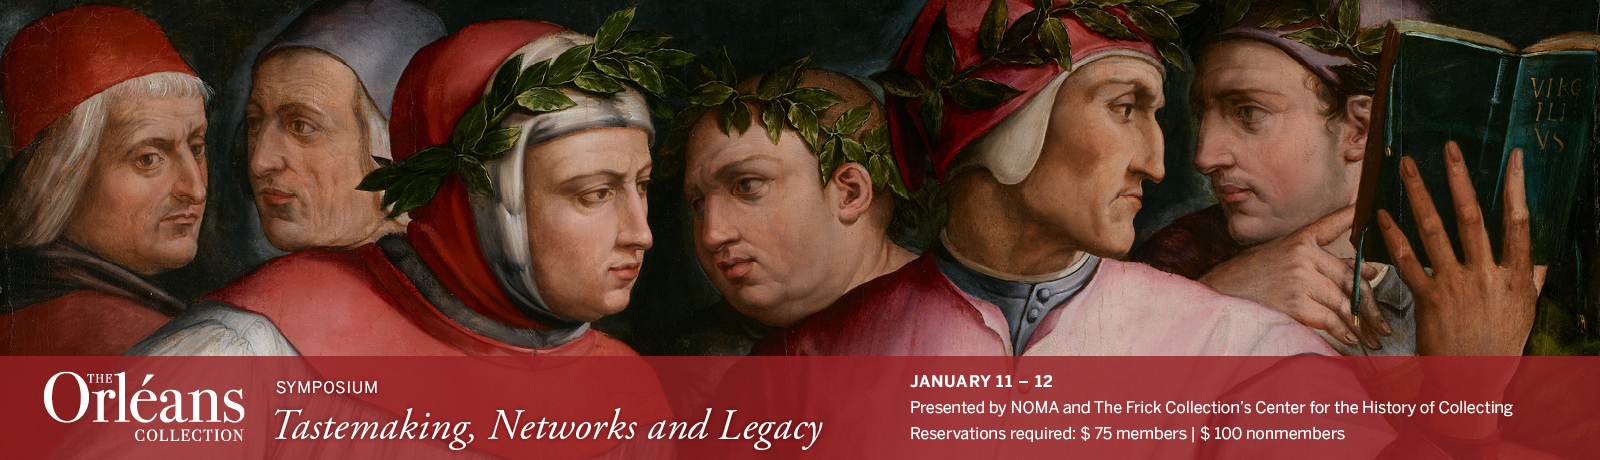 Sign up for a series of public lectures from January 11-12 focusing on art in 17th-century Europe and the long-lasting influence of the Duke of Orléans.